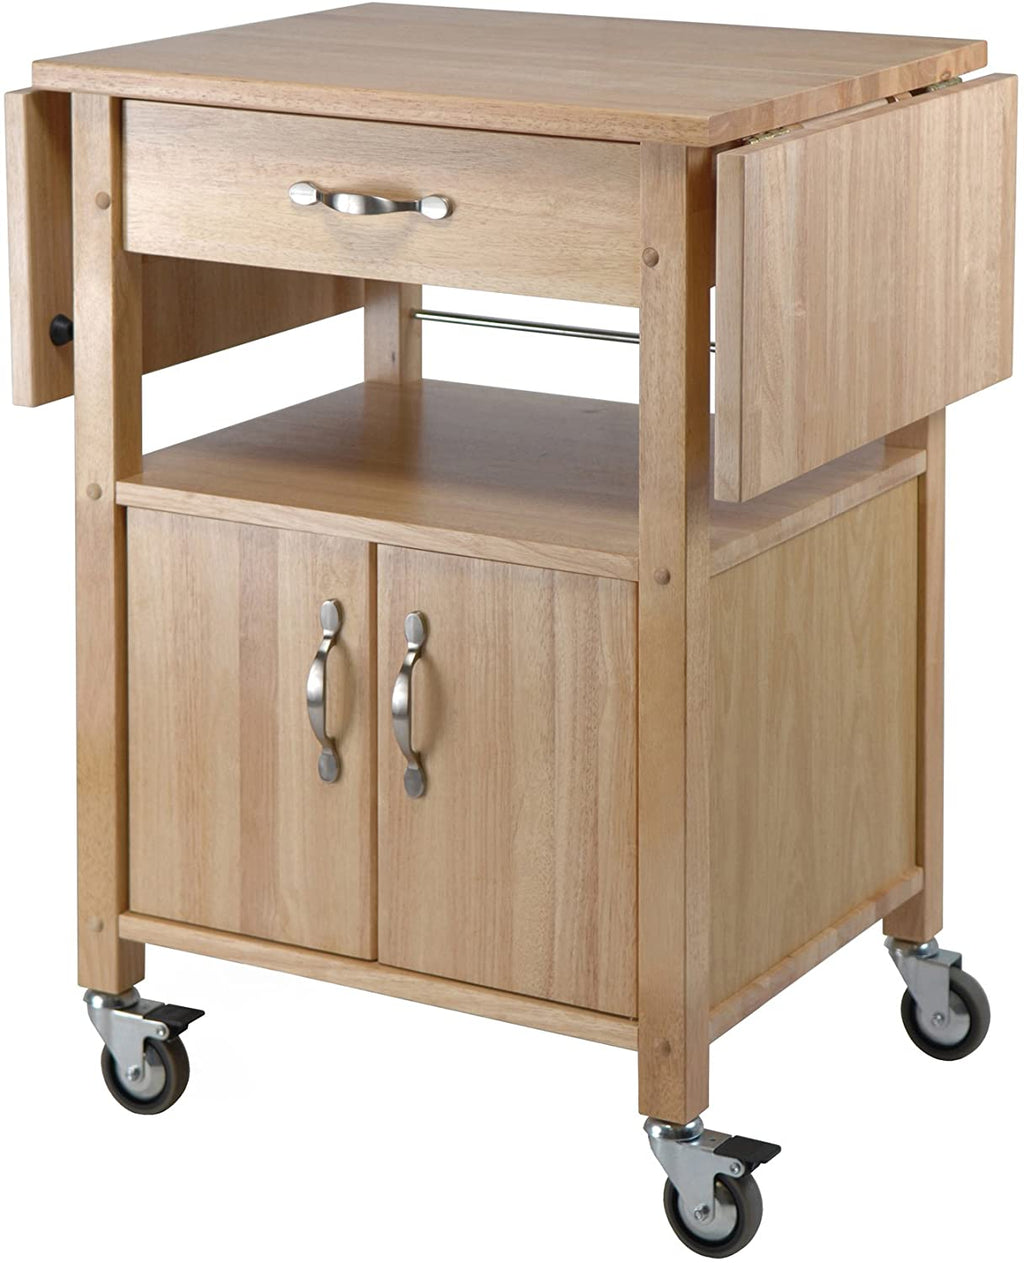 Kitchen Cart, Double Drop Leaf, Cabinet With Shelf - Pot Racks Plus